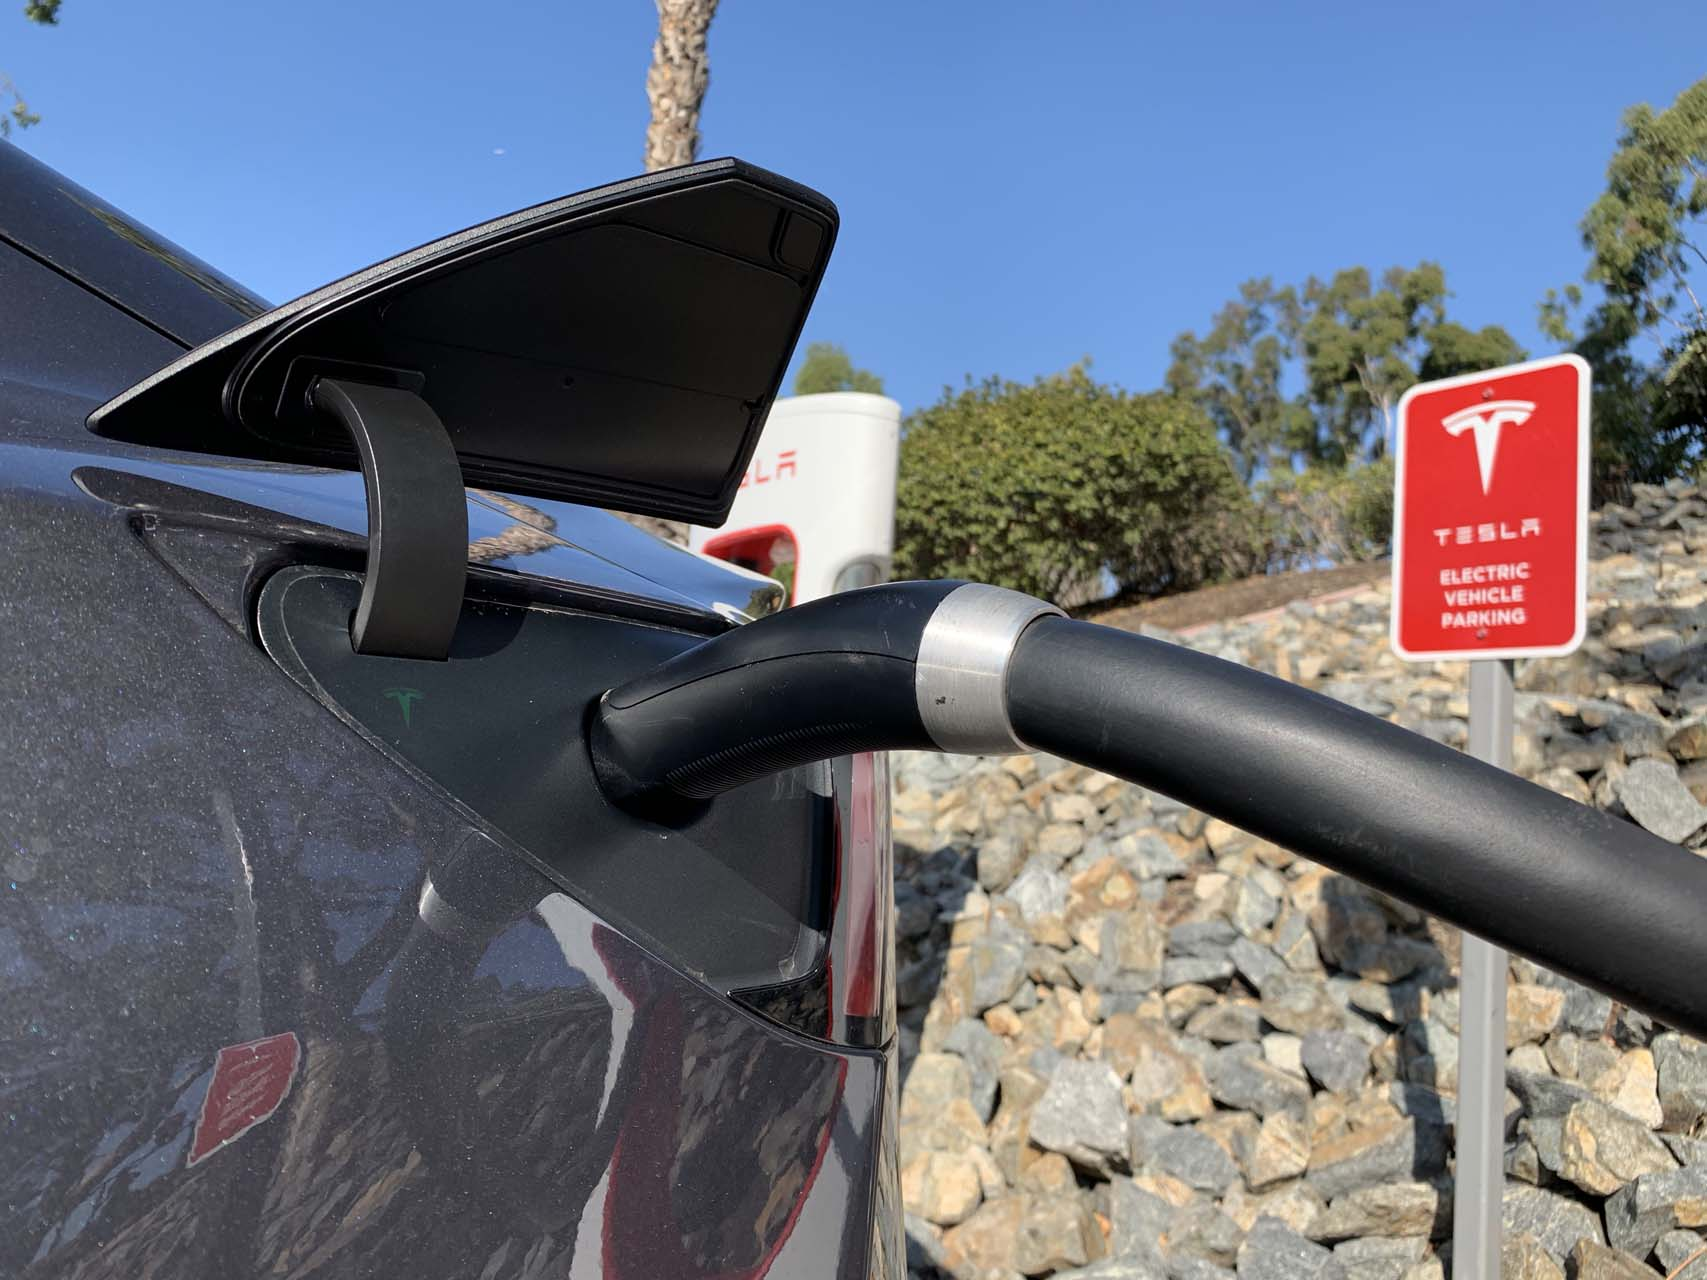 Tesla Model 3 could charge faster in Europe, charging